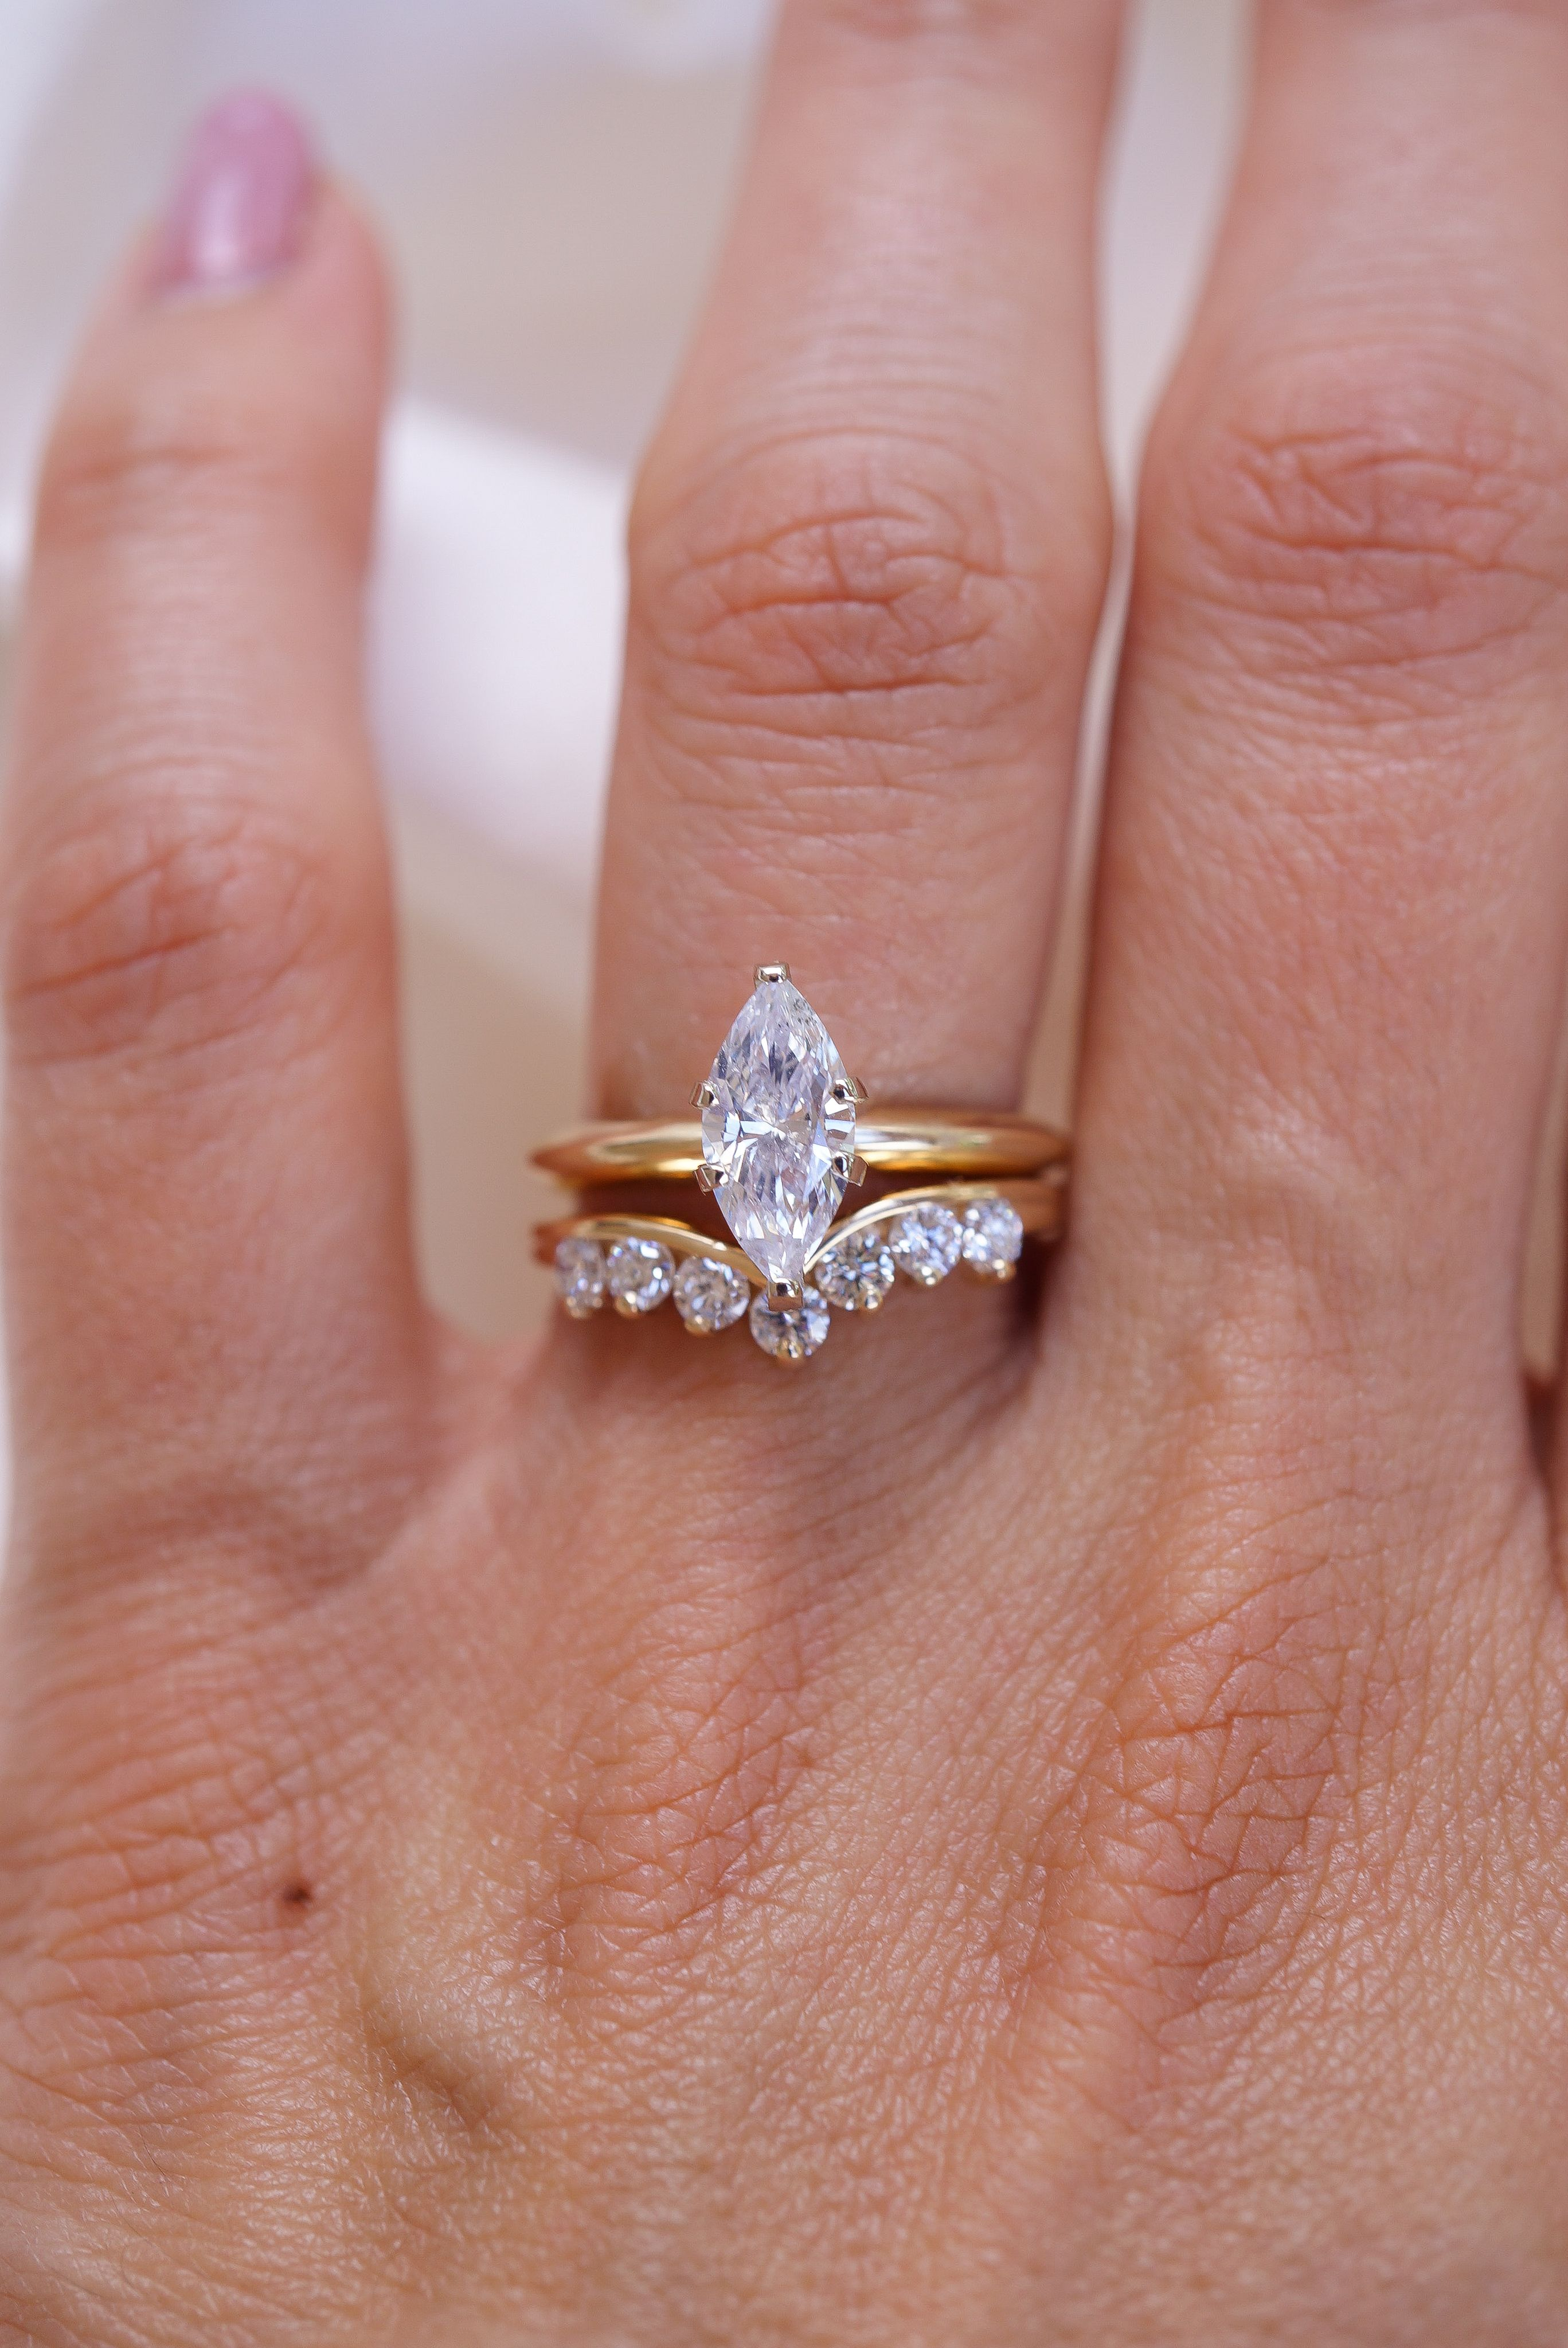 Marquise Diamond Solitaire Ring In 14k Yellow Gold Dainty Marquise Diamond Ring Solitaire Diamond Ring Minimalist Engagement Ring Minimalist Engagement Ring Vintage Engagement Rings Marquise Diamond Solitaire Ring